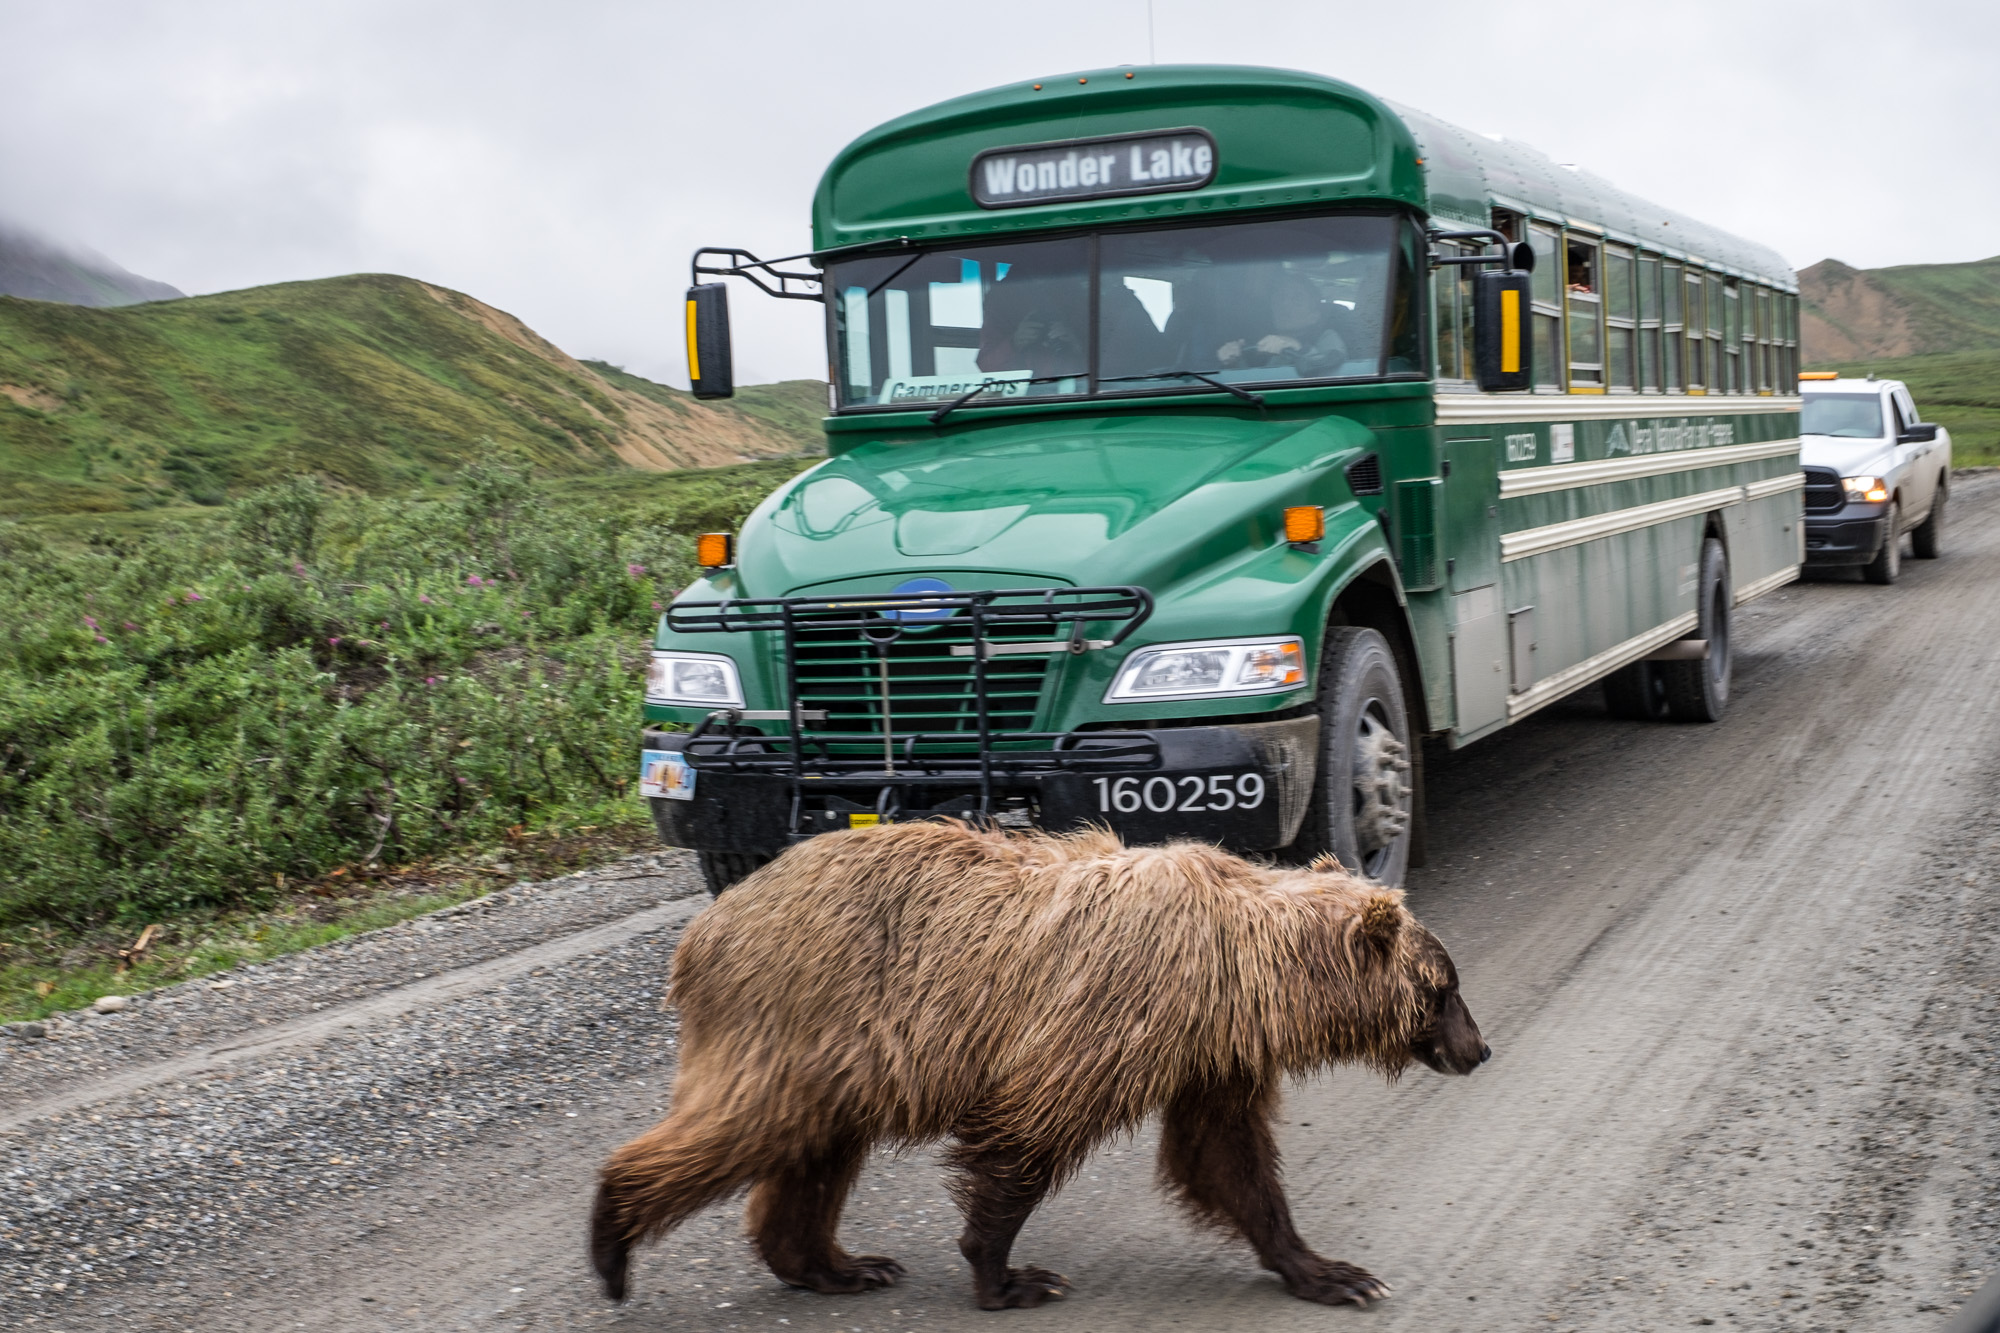 Grizzly crossing!